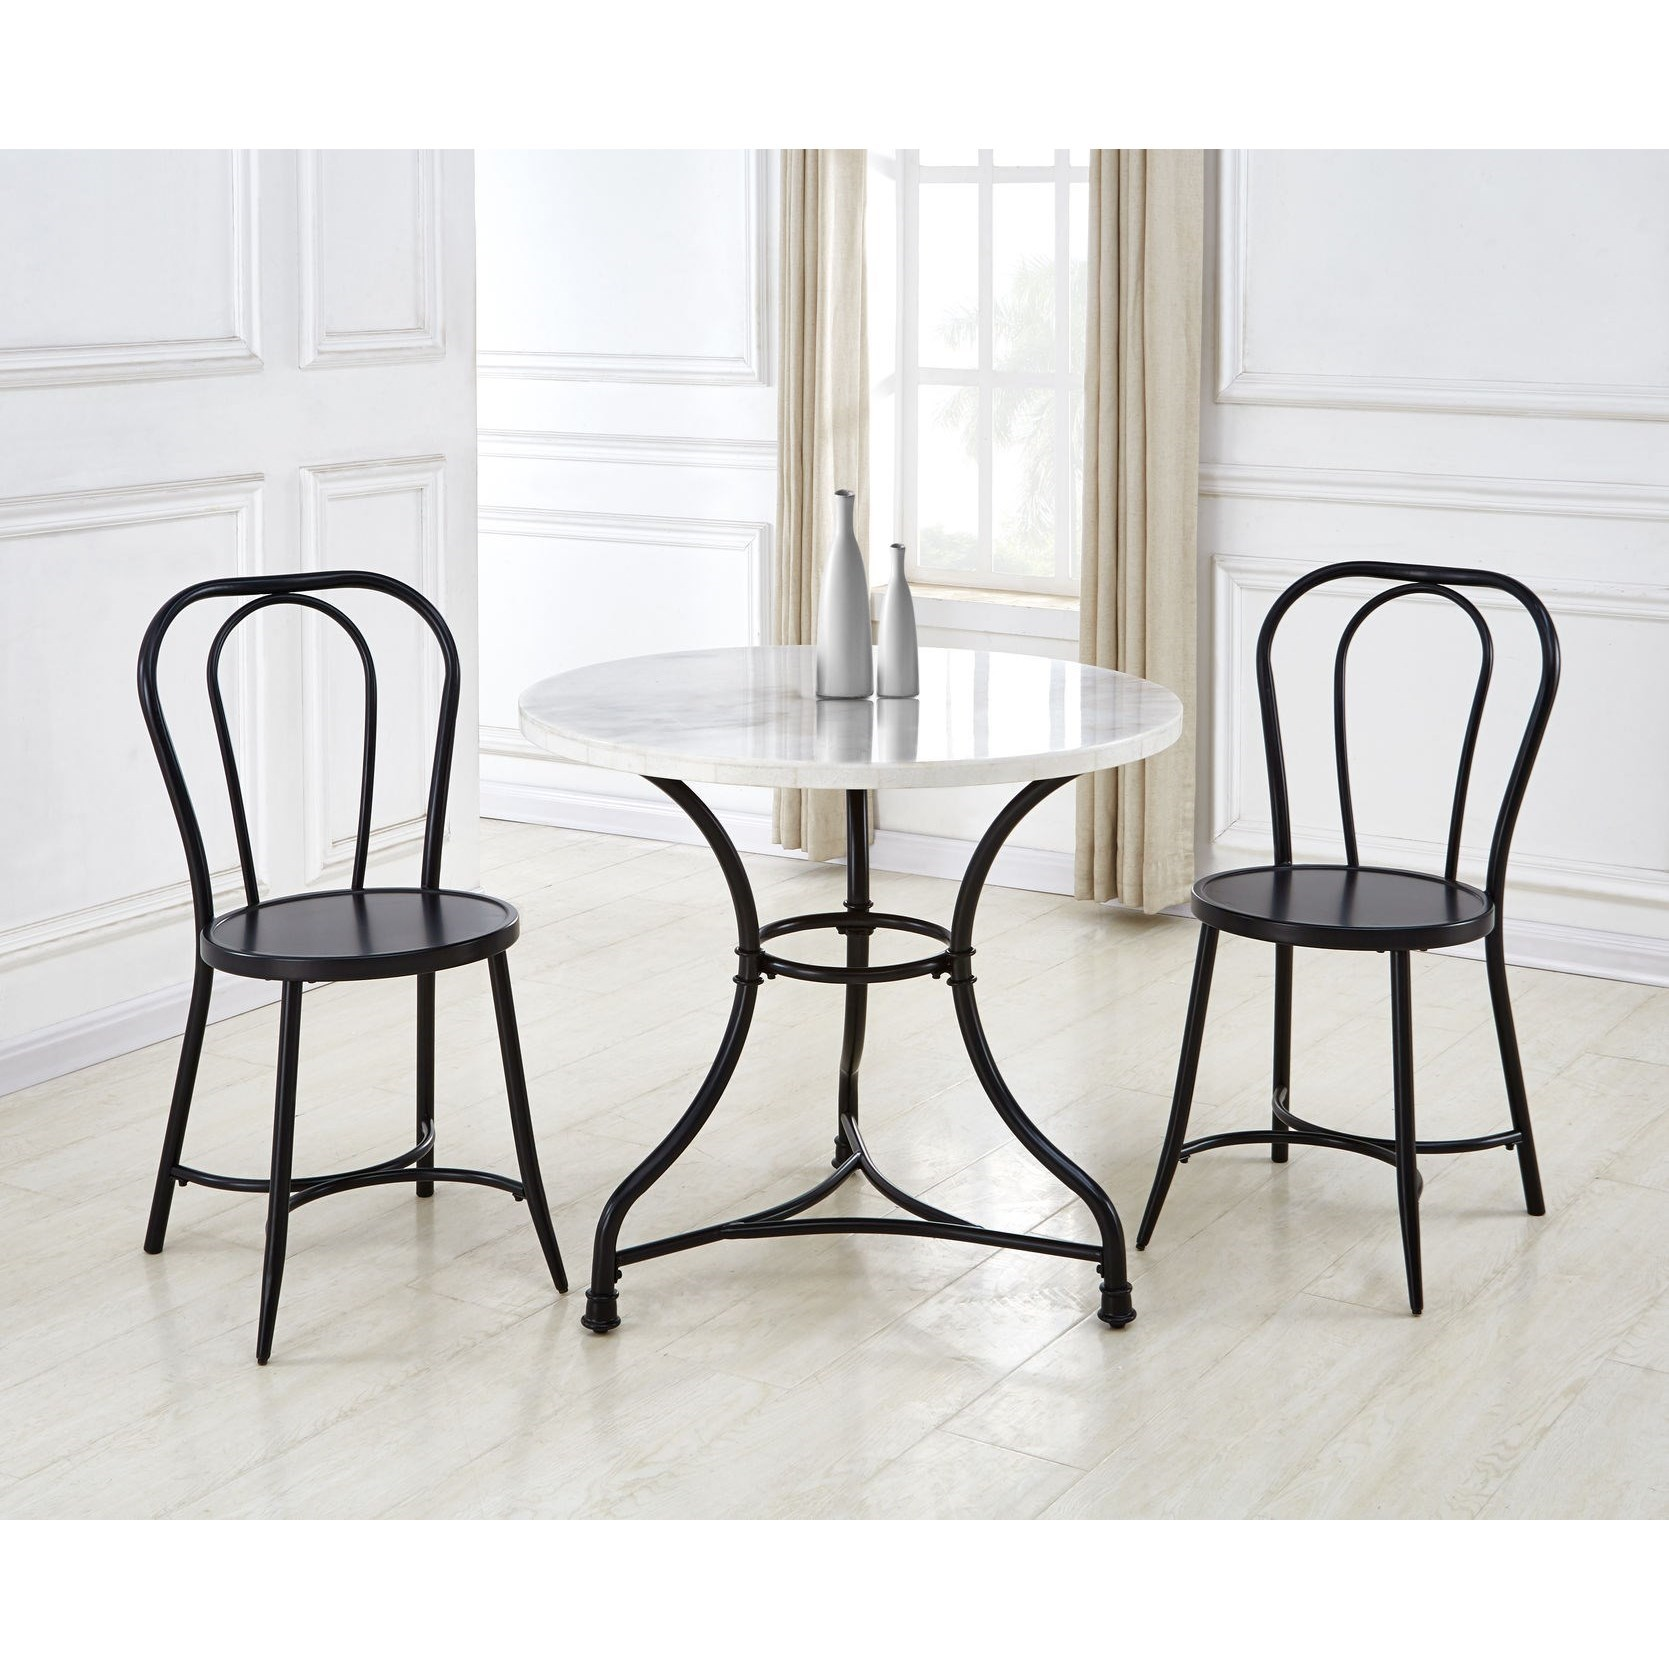 Claire 3-Piece Table and Chair Set by Steve Silver at Northeast Factory Direct